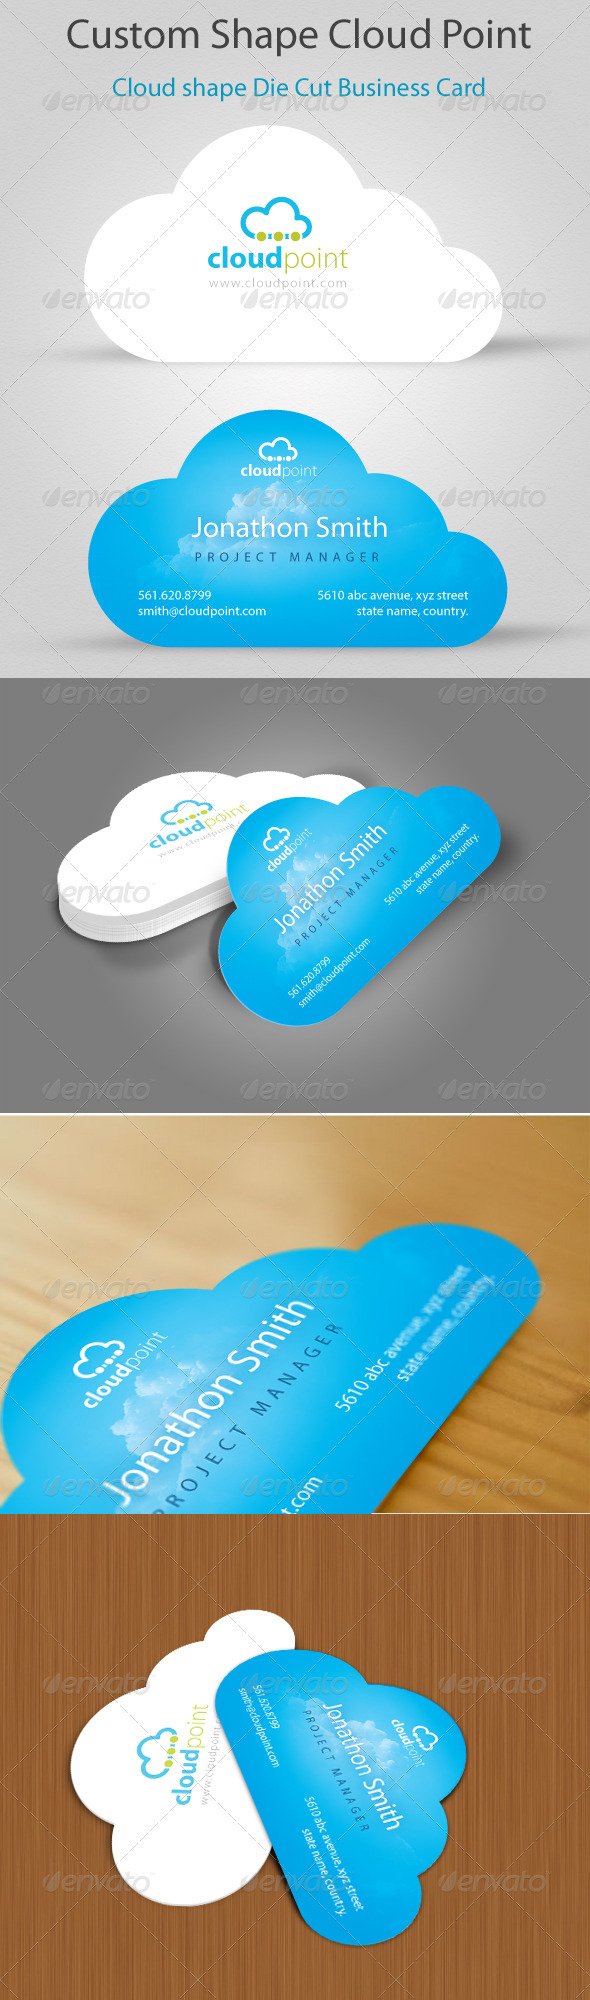 Cloud Point Custom Shape Die cut Business Card - Creative Business Cards